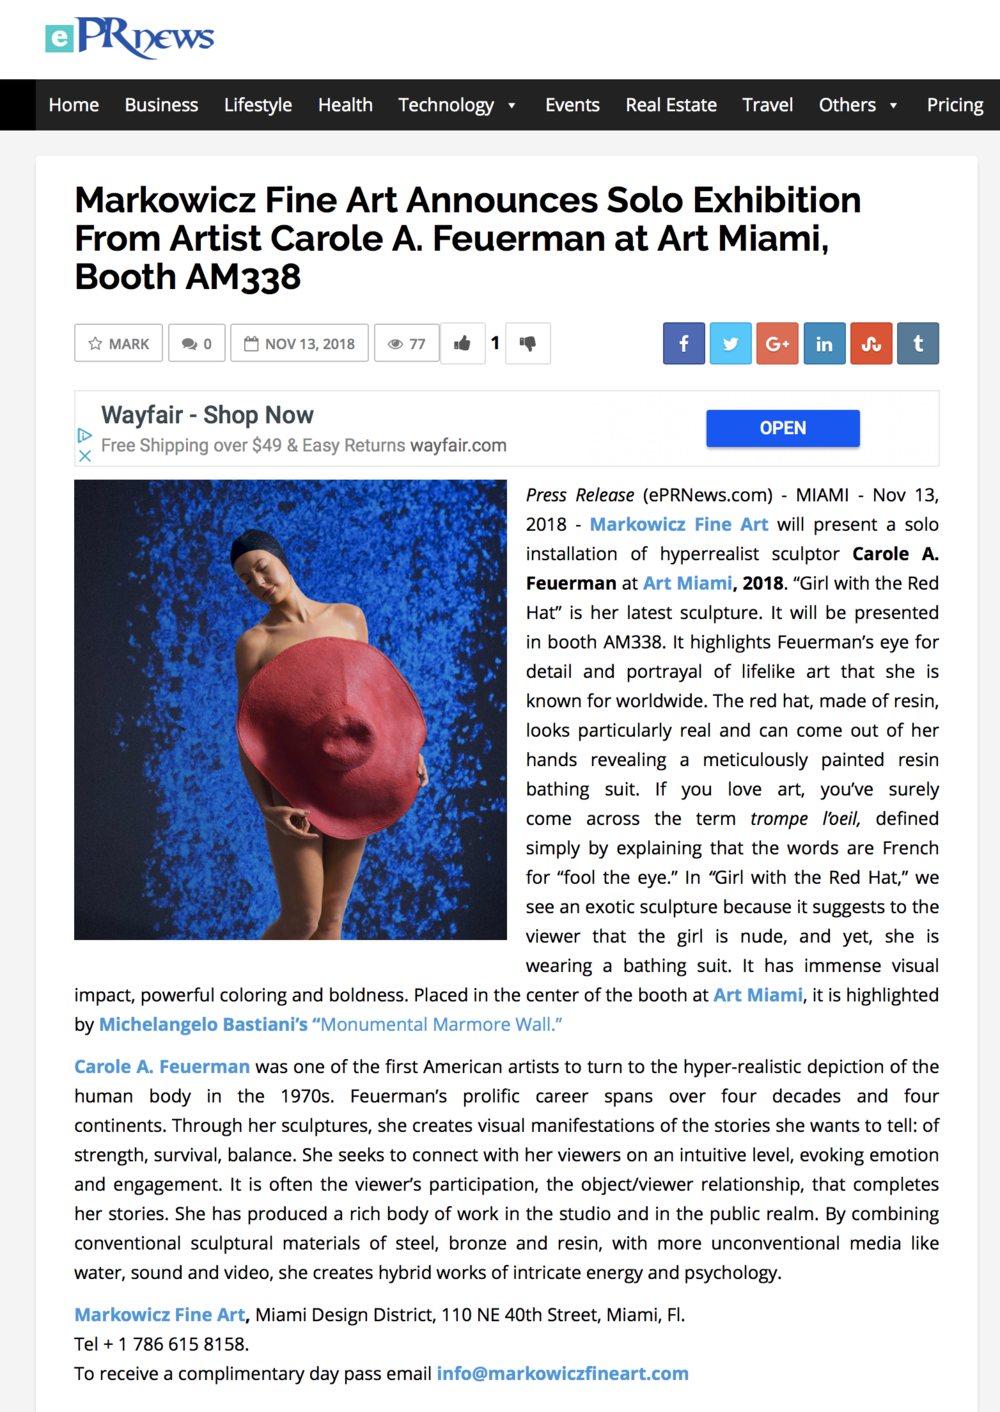 Markowicz Fine Art Announces Solo Exhibition From Artist Carole A. Feuerman at Art Miami, Booth AM338​